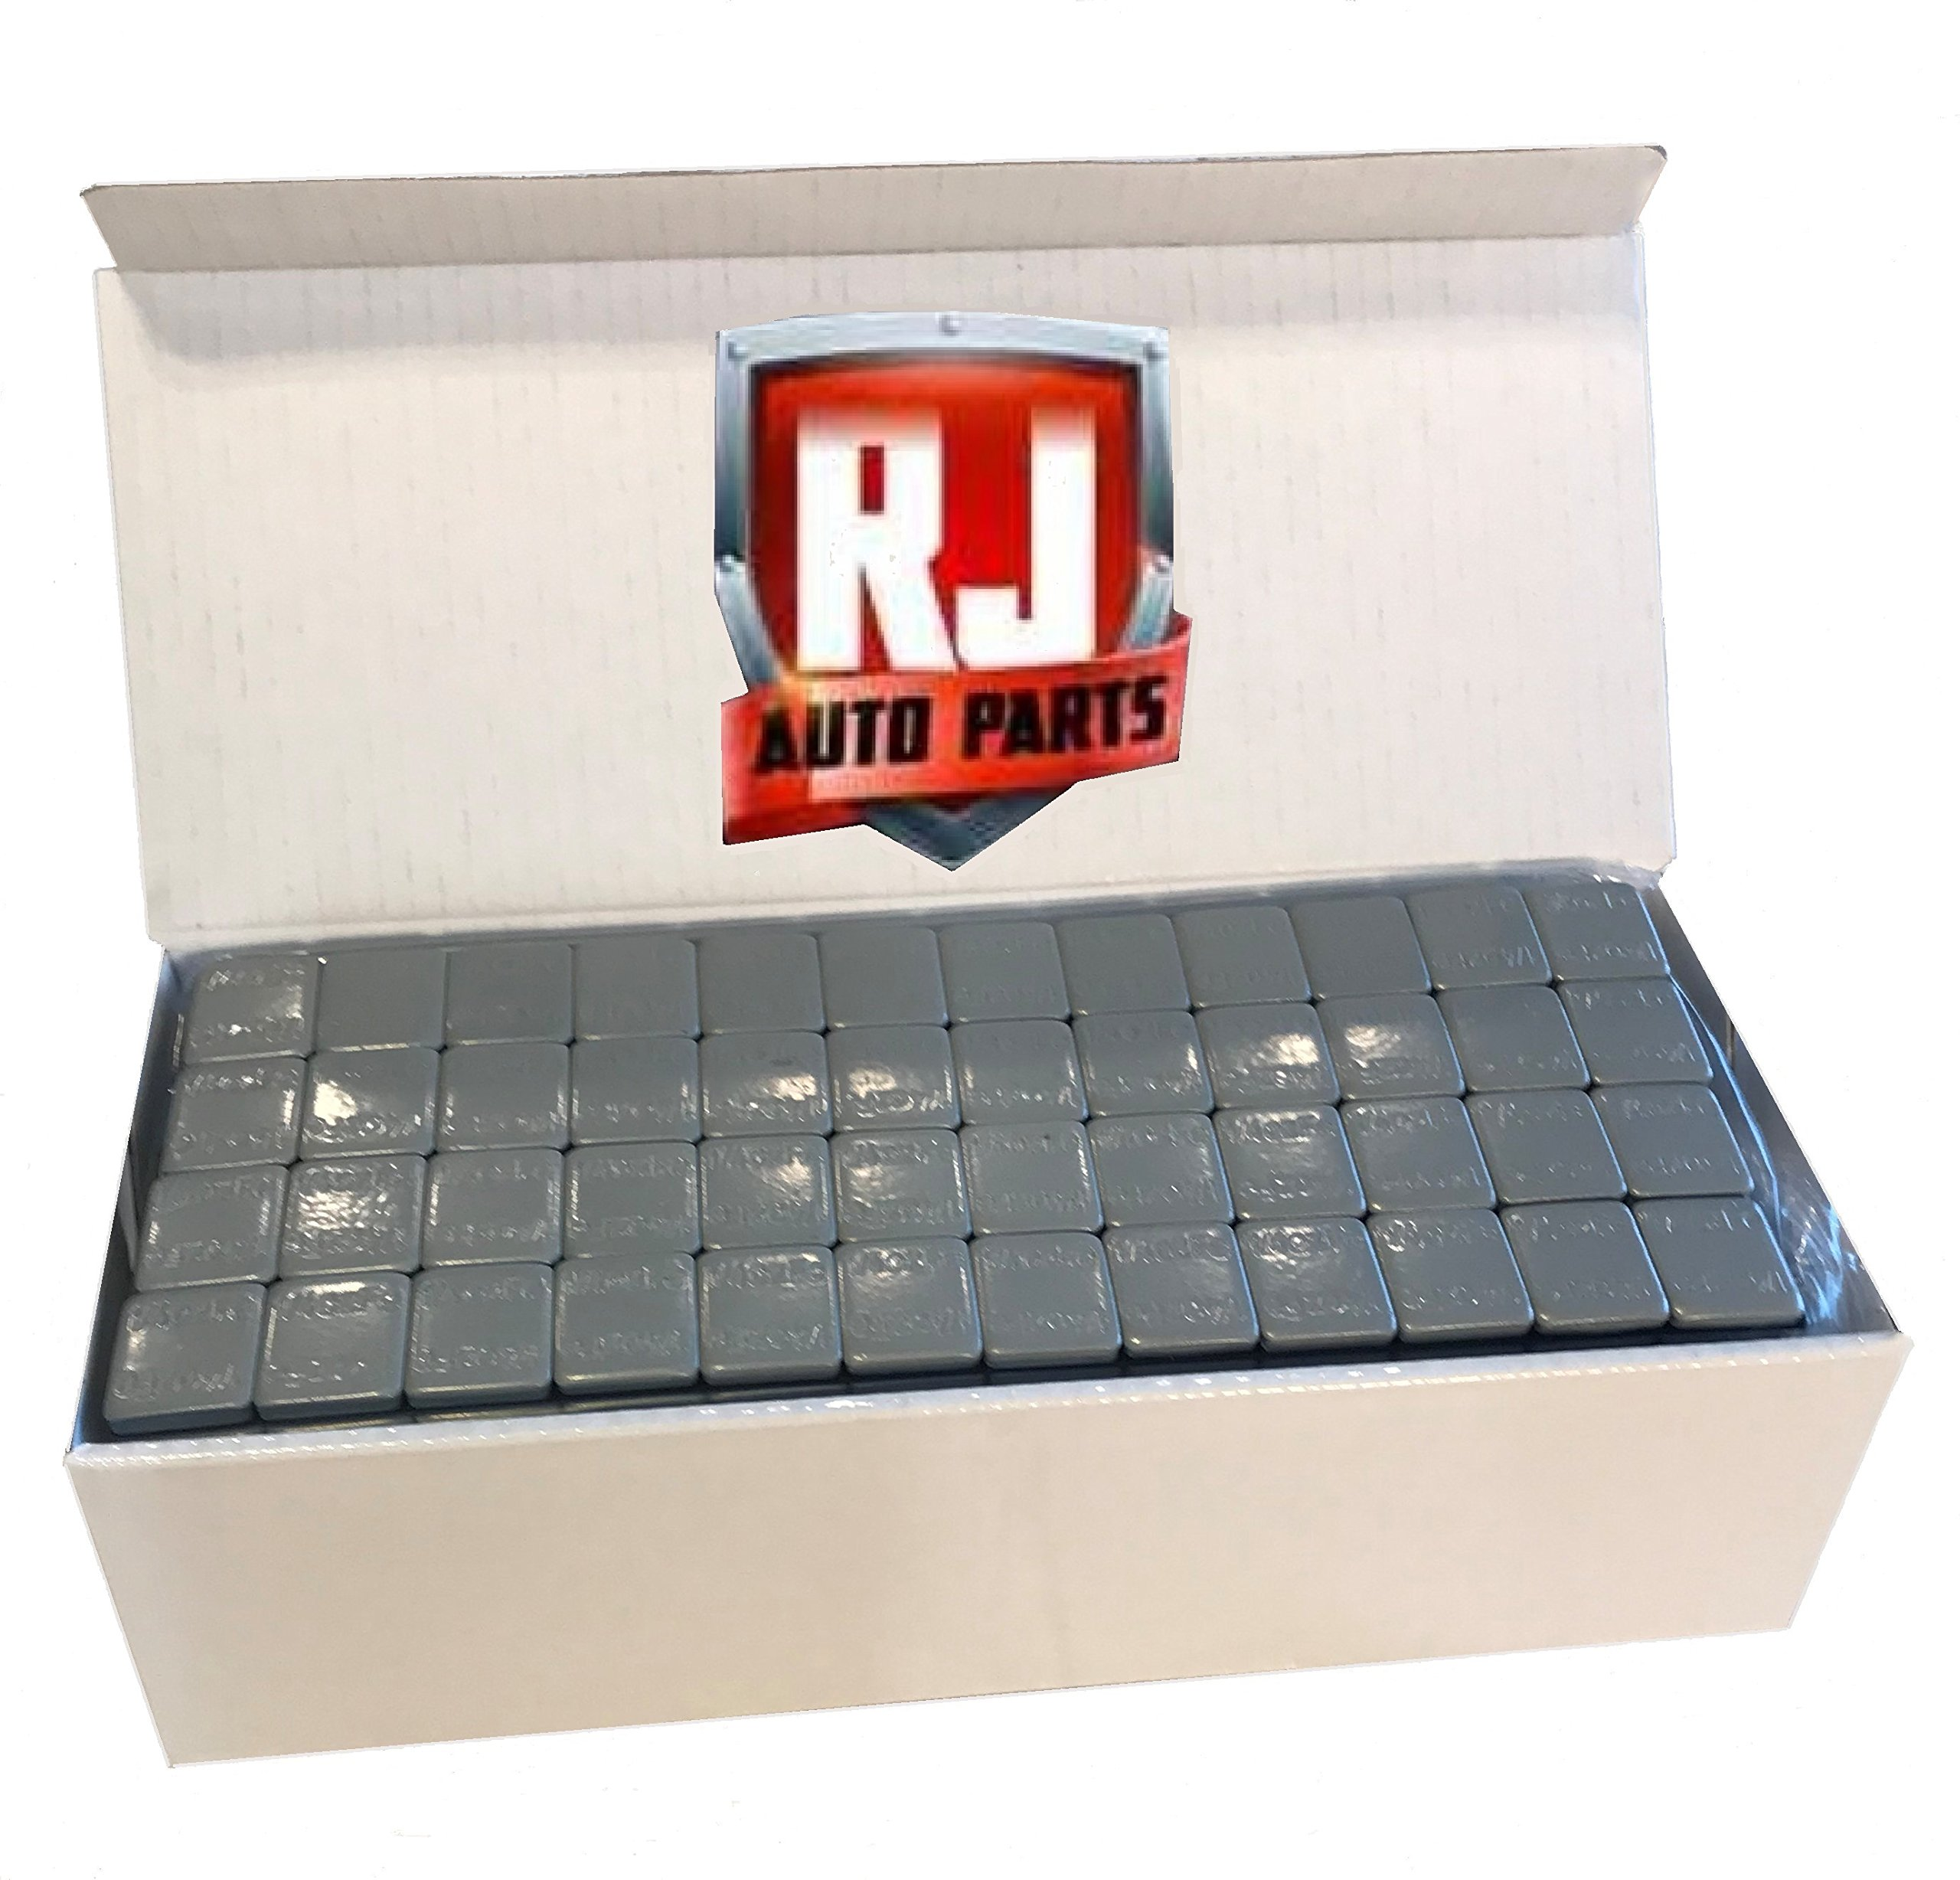 1 Box Wheel Weights Grey 1/4 oz. Stick-on Adhesive Tape, Lead Free (9.75 lbs) 624 Pieces